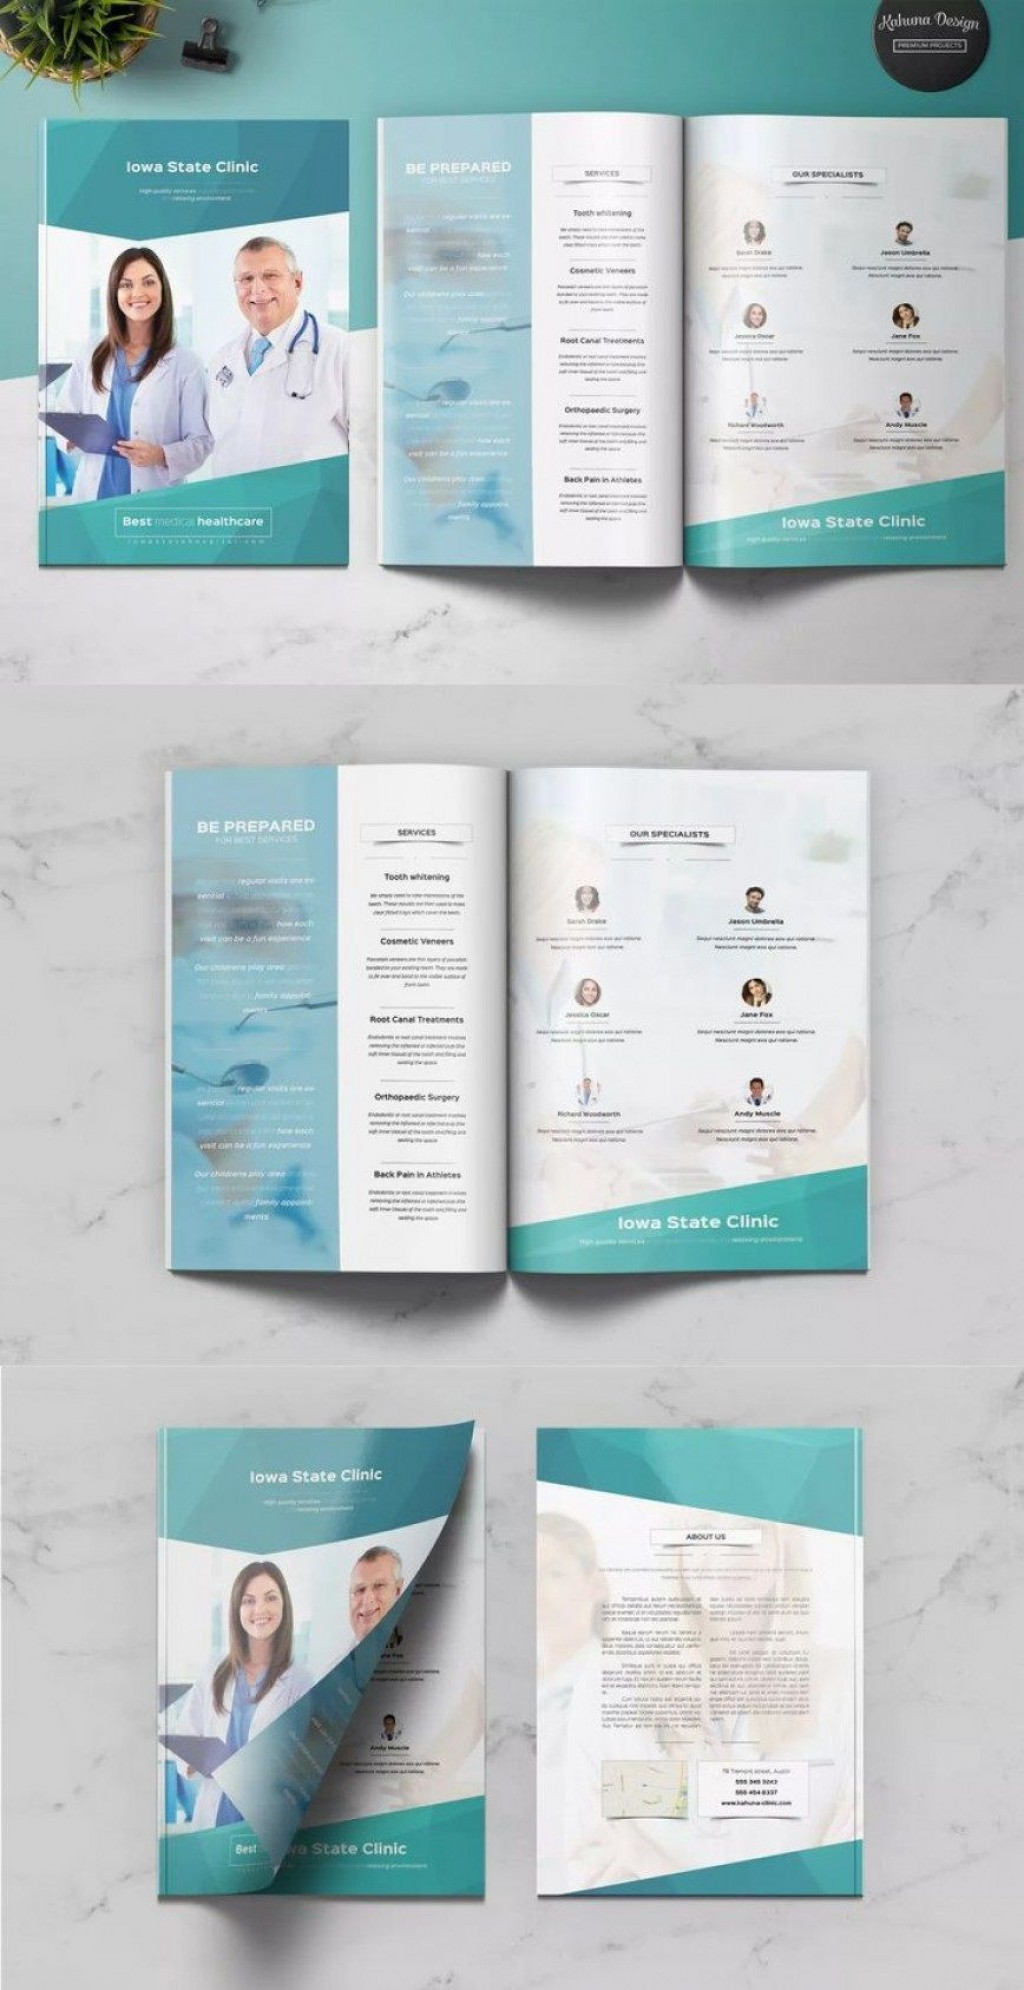 007 Remarkable Download Brochure Template For Microsoft Word 2007 High Def  FreeLarge